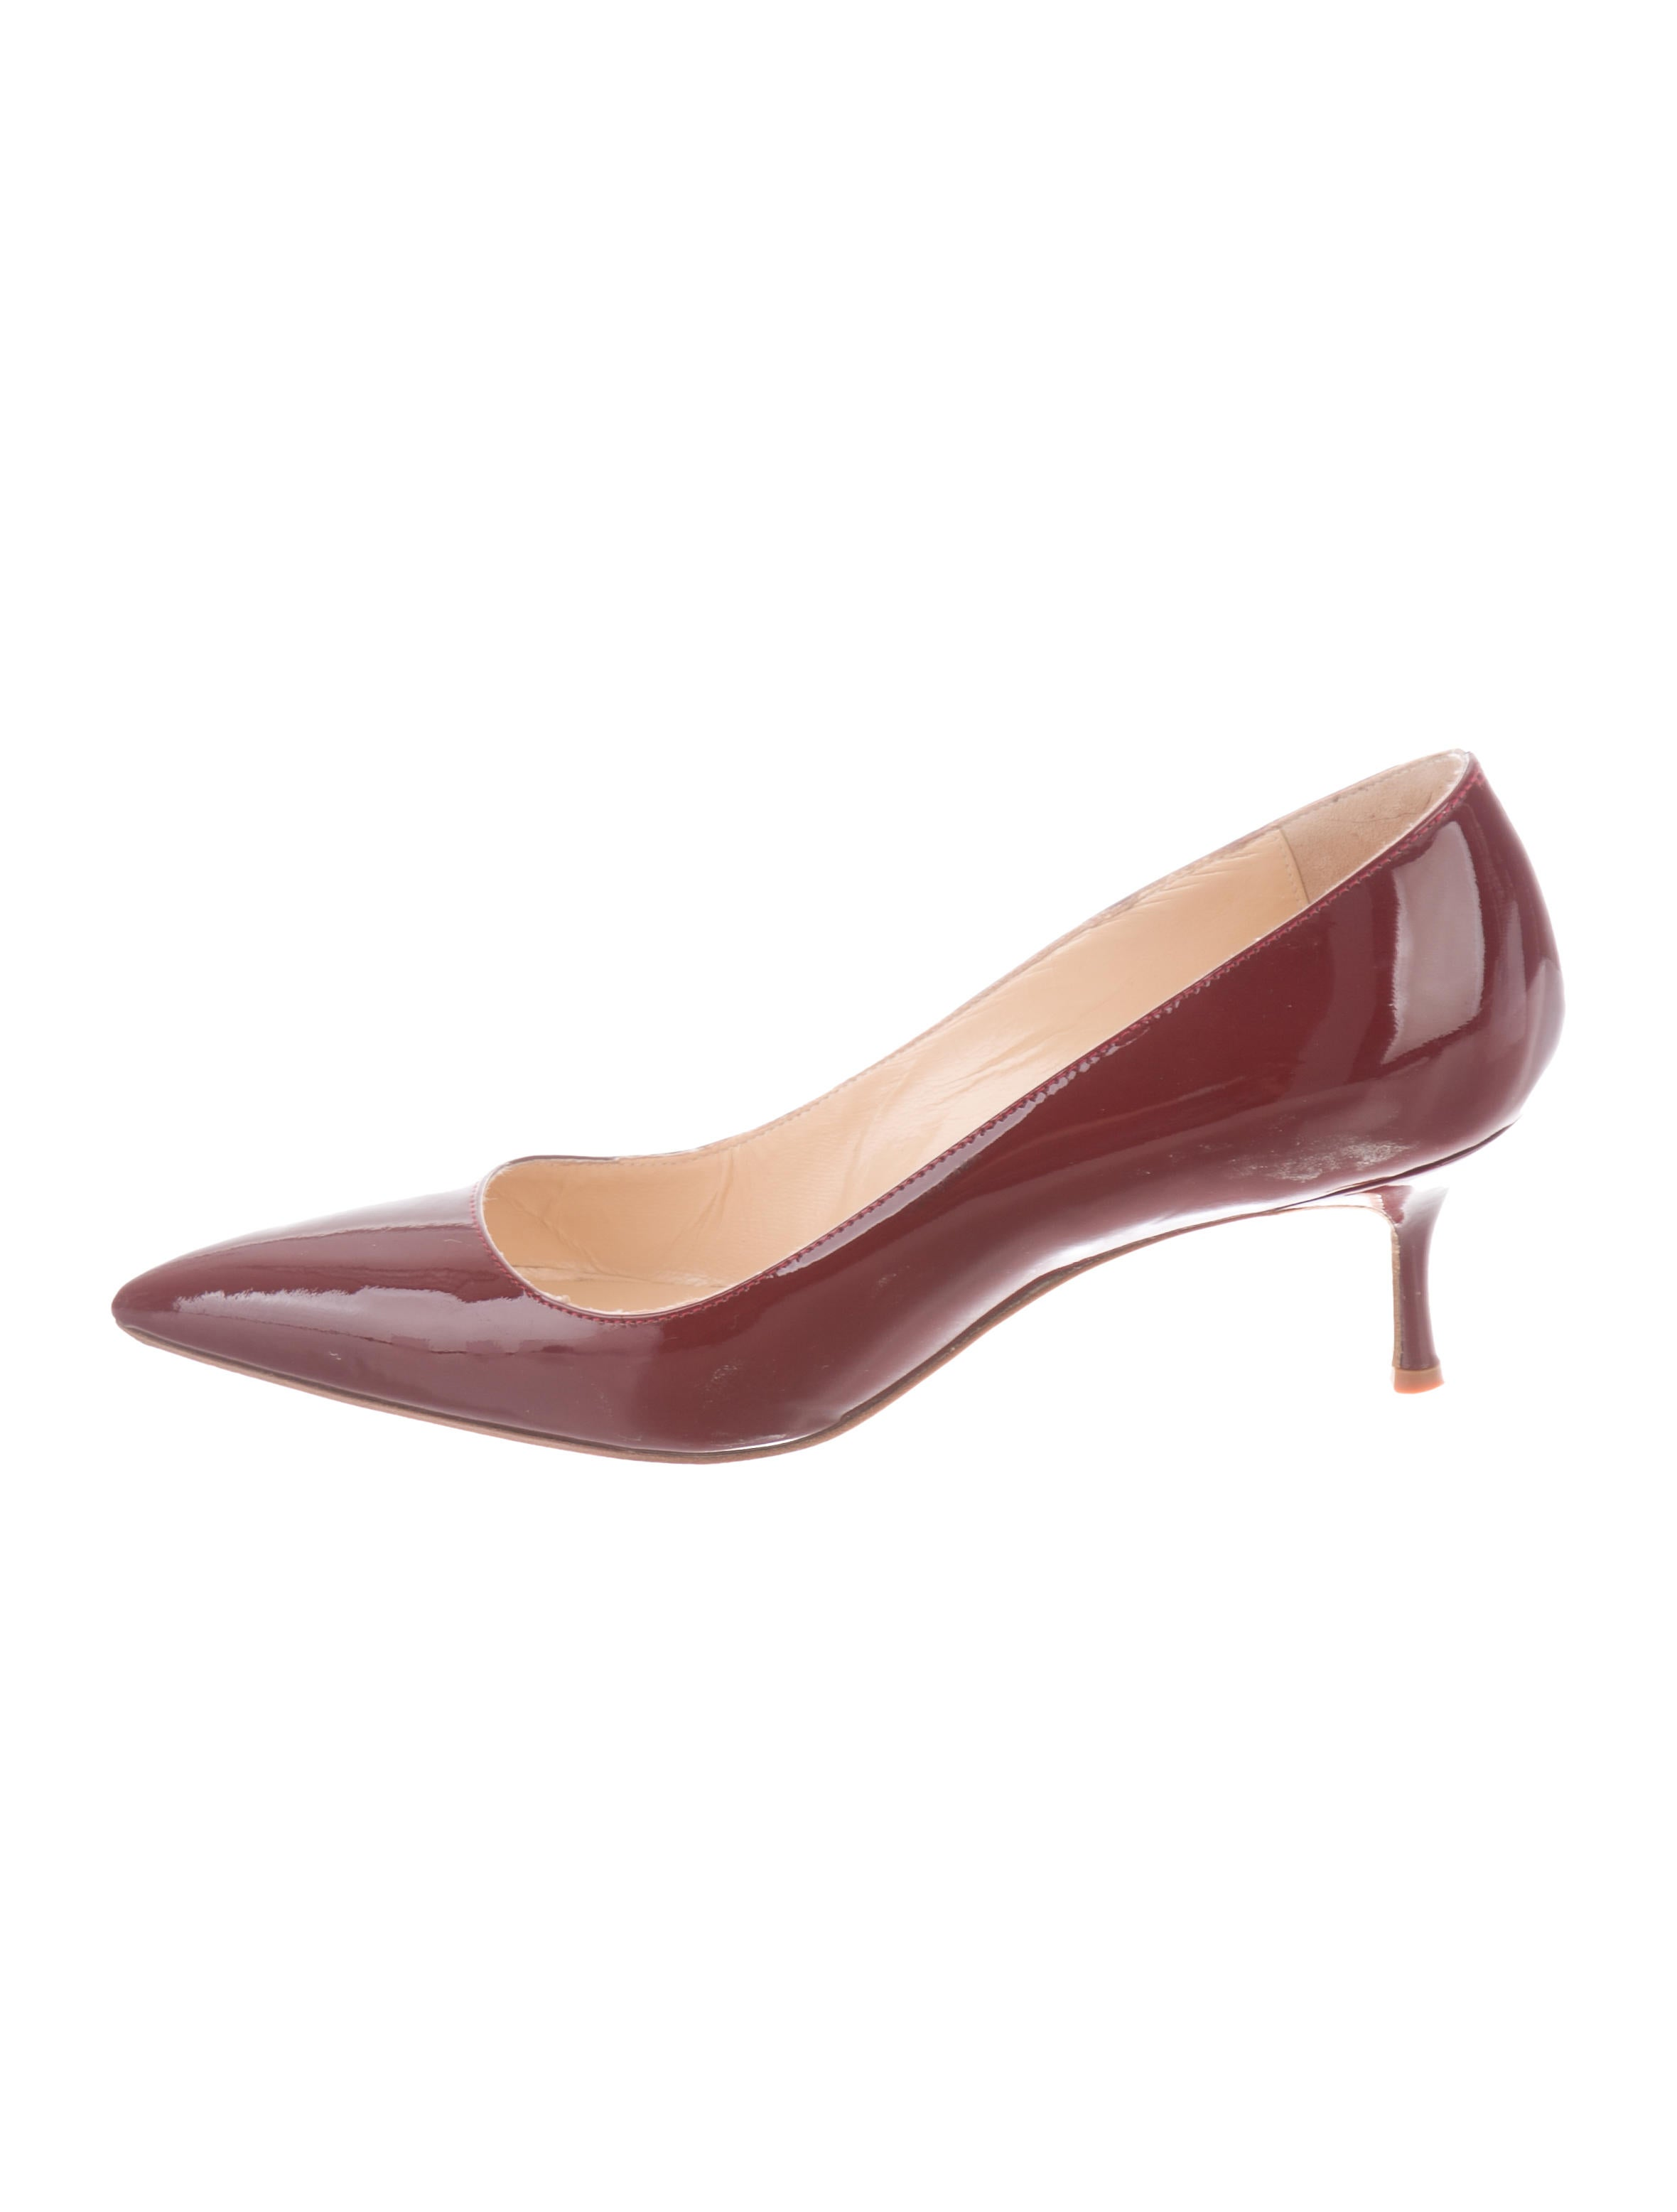 d81729a55682 Manolo Blahnik Patent Leather Pointed-Toe Pumps - Shoes - MOO106325 ...